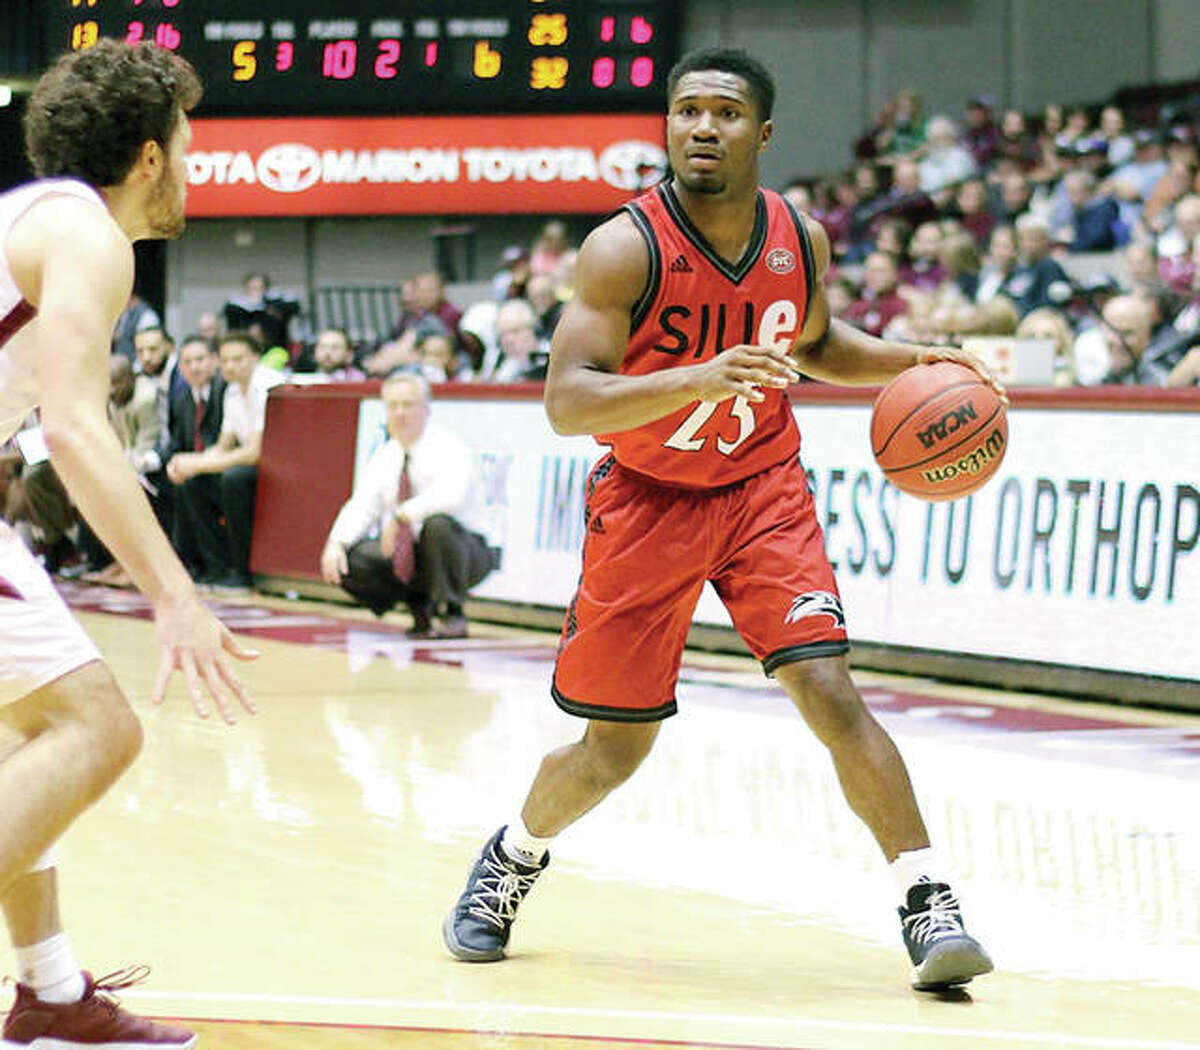 Senior Jalen Henry poured in a career-high 35 points Thursday night to lead SIUE to its first Ohio Valley Conference win of the season, an 85-82 triumph on the road at Eastern Kentucky.